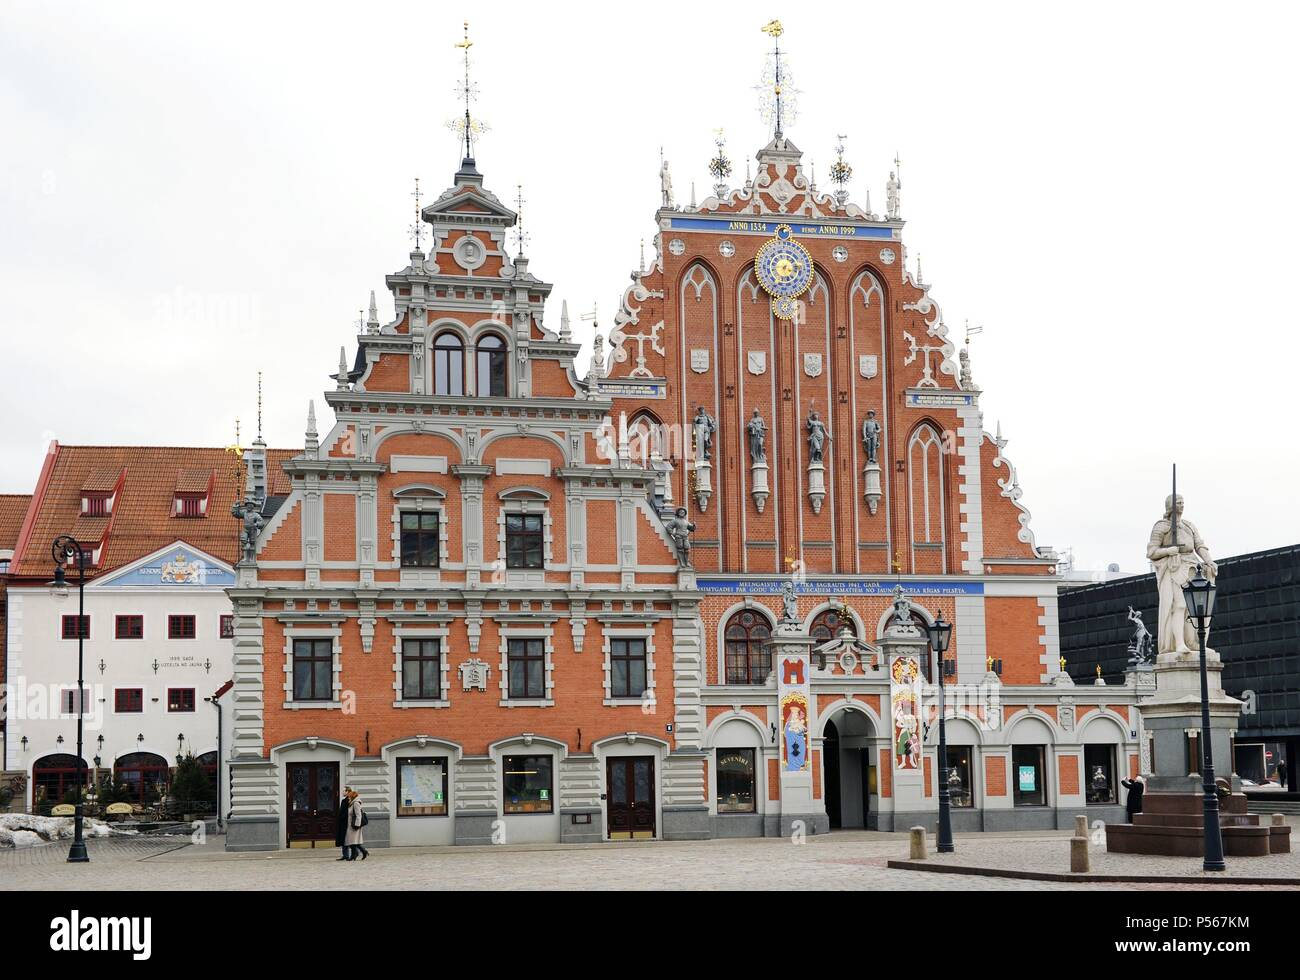 Latvia. Riga. House of the Blackheads (Melngalvju nams). Erected in 14th century for the Brotherhood of Blackheads, a guild for unmarried German merchants in Riga. Major works were done in the years 1580 and 1886. The structure was bombed to a ruin by the Germans and the remains demolished by the Soviets. The reconstruction was from 1995 to 1999. - Stock Image